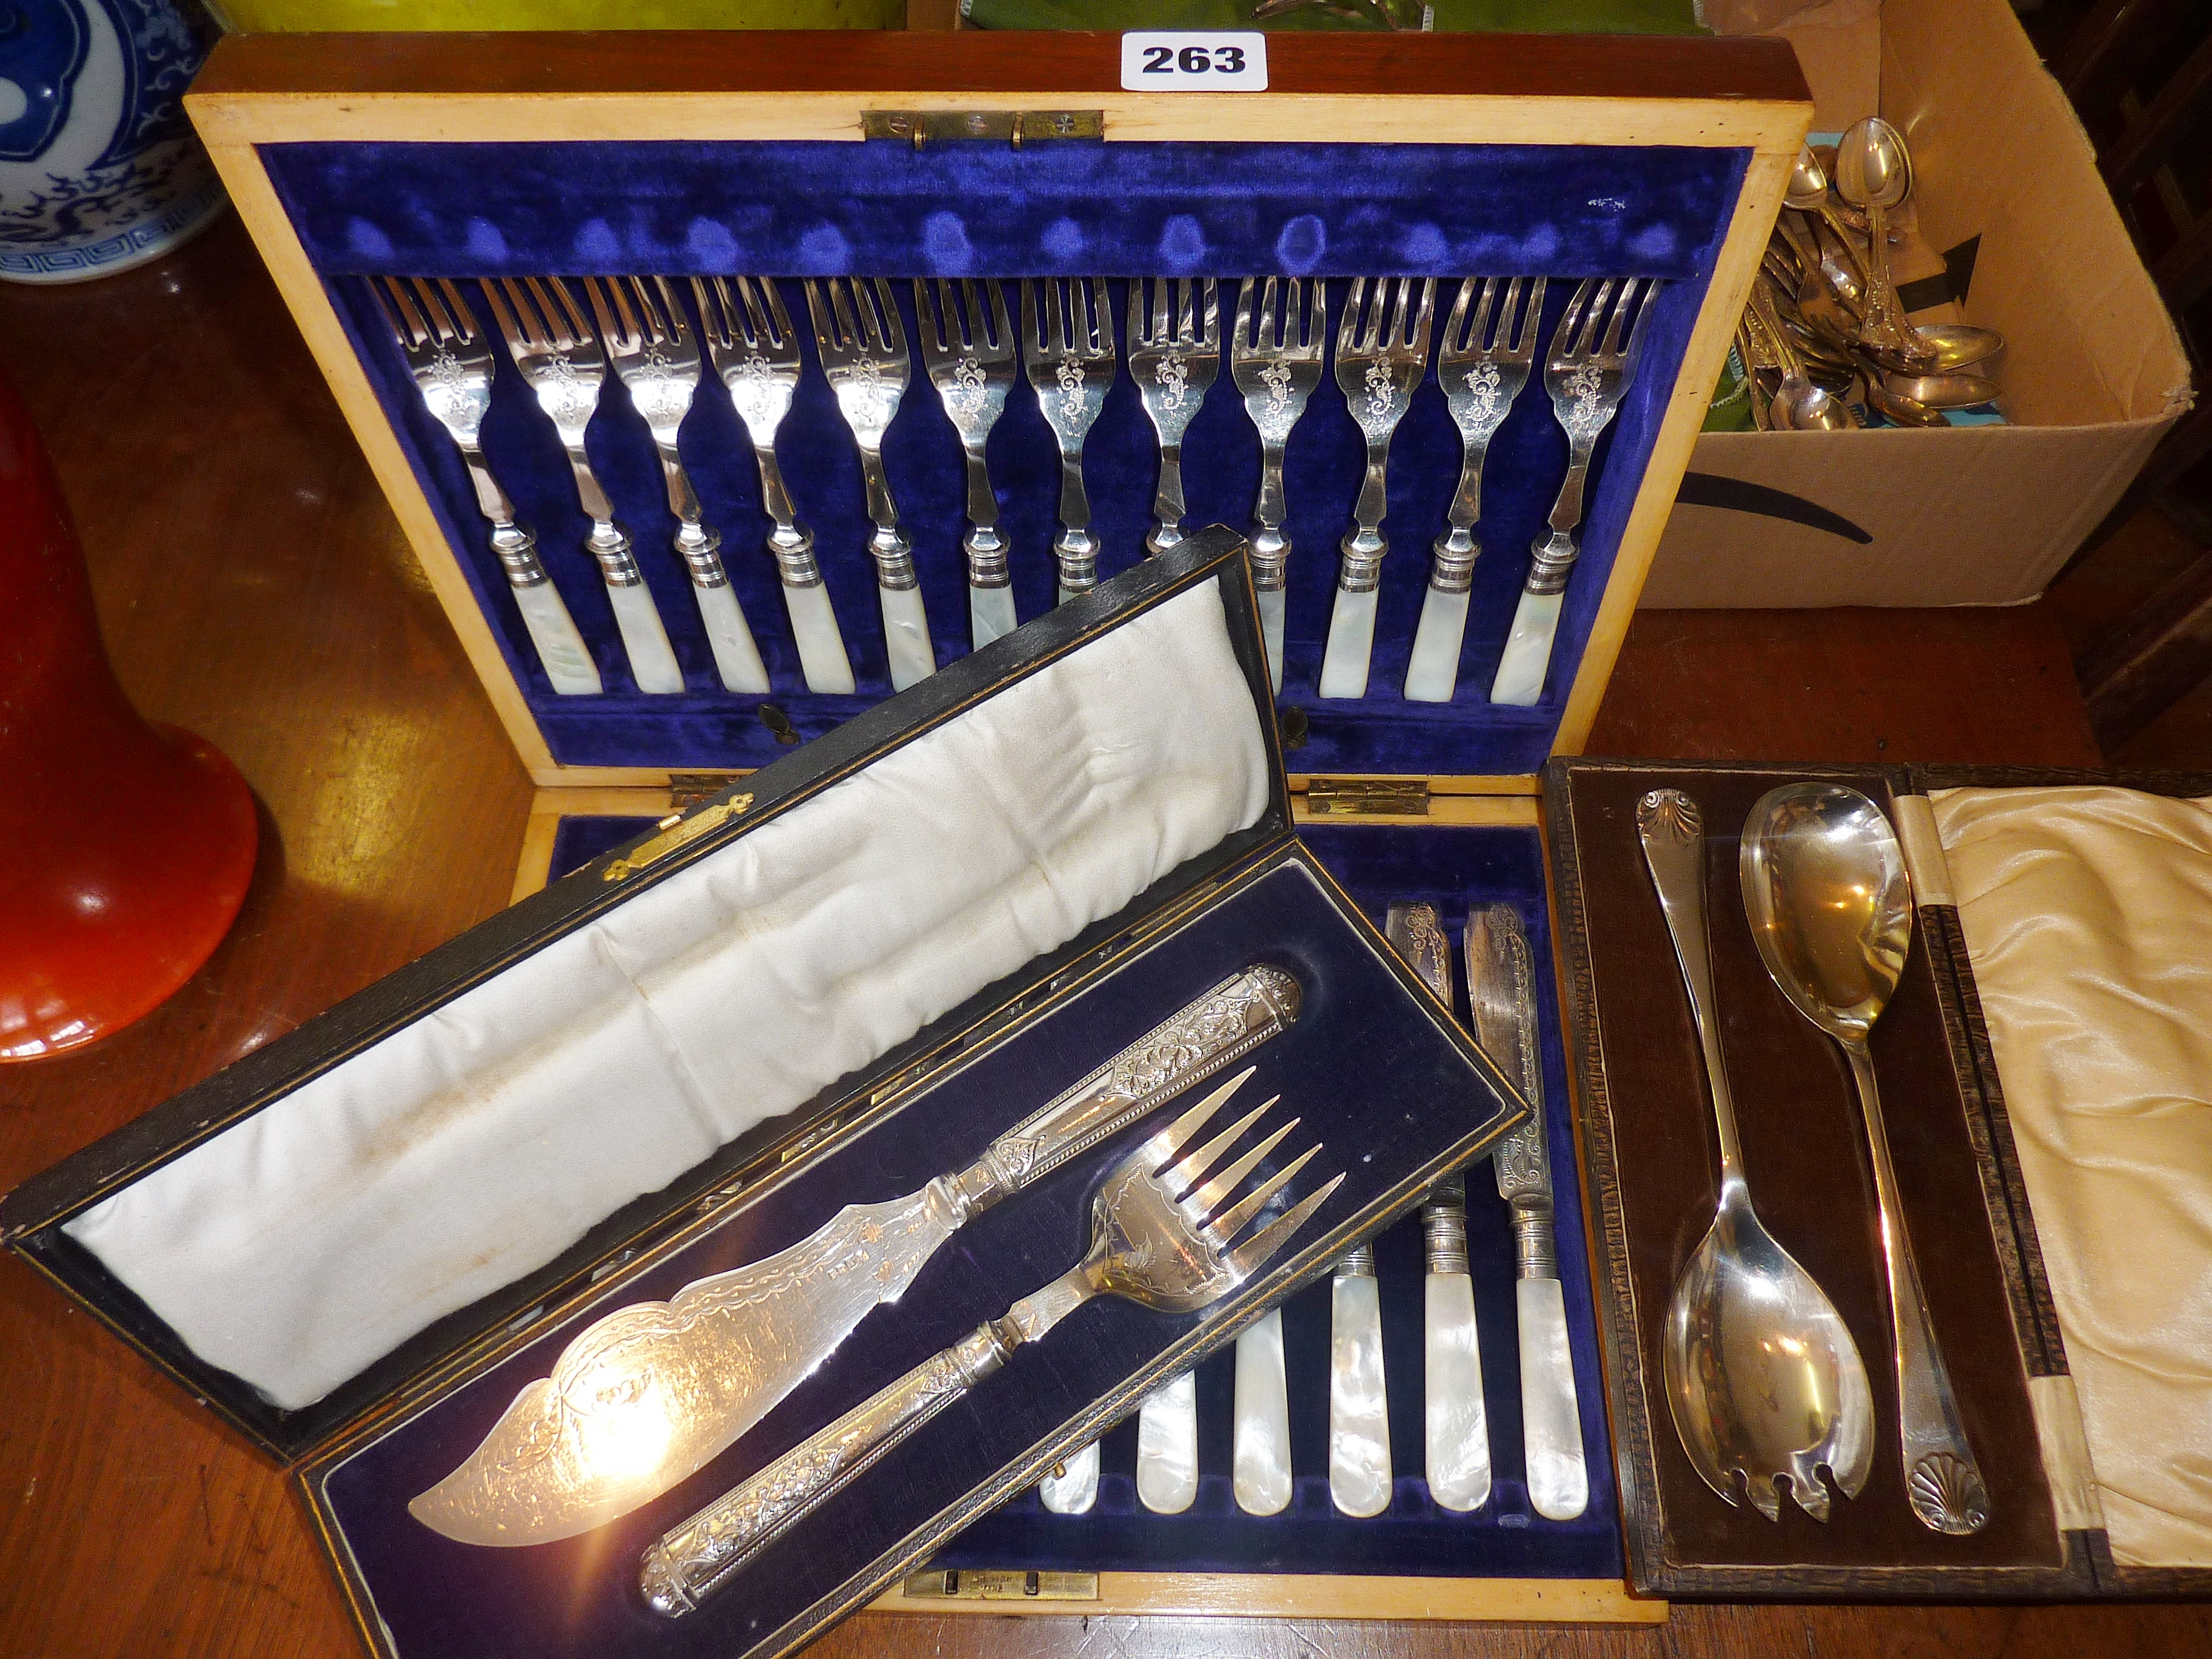 Cased set of twelve fish knives and forks, with mother-of-pearl handles, cased fish servers and